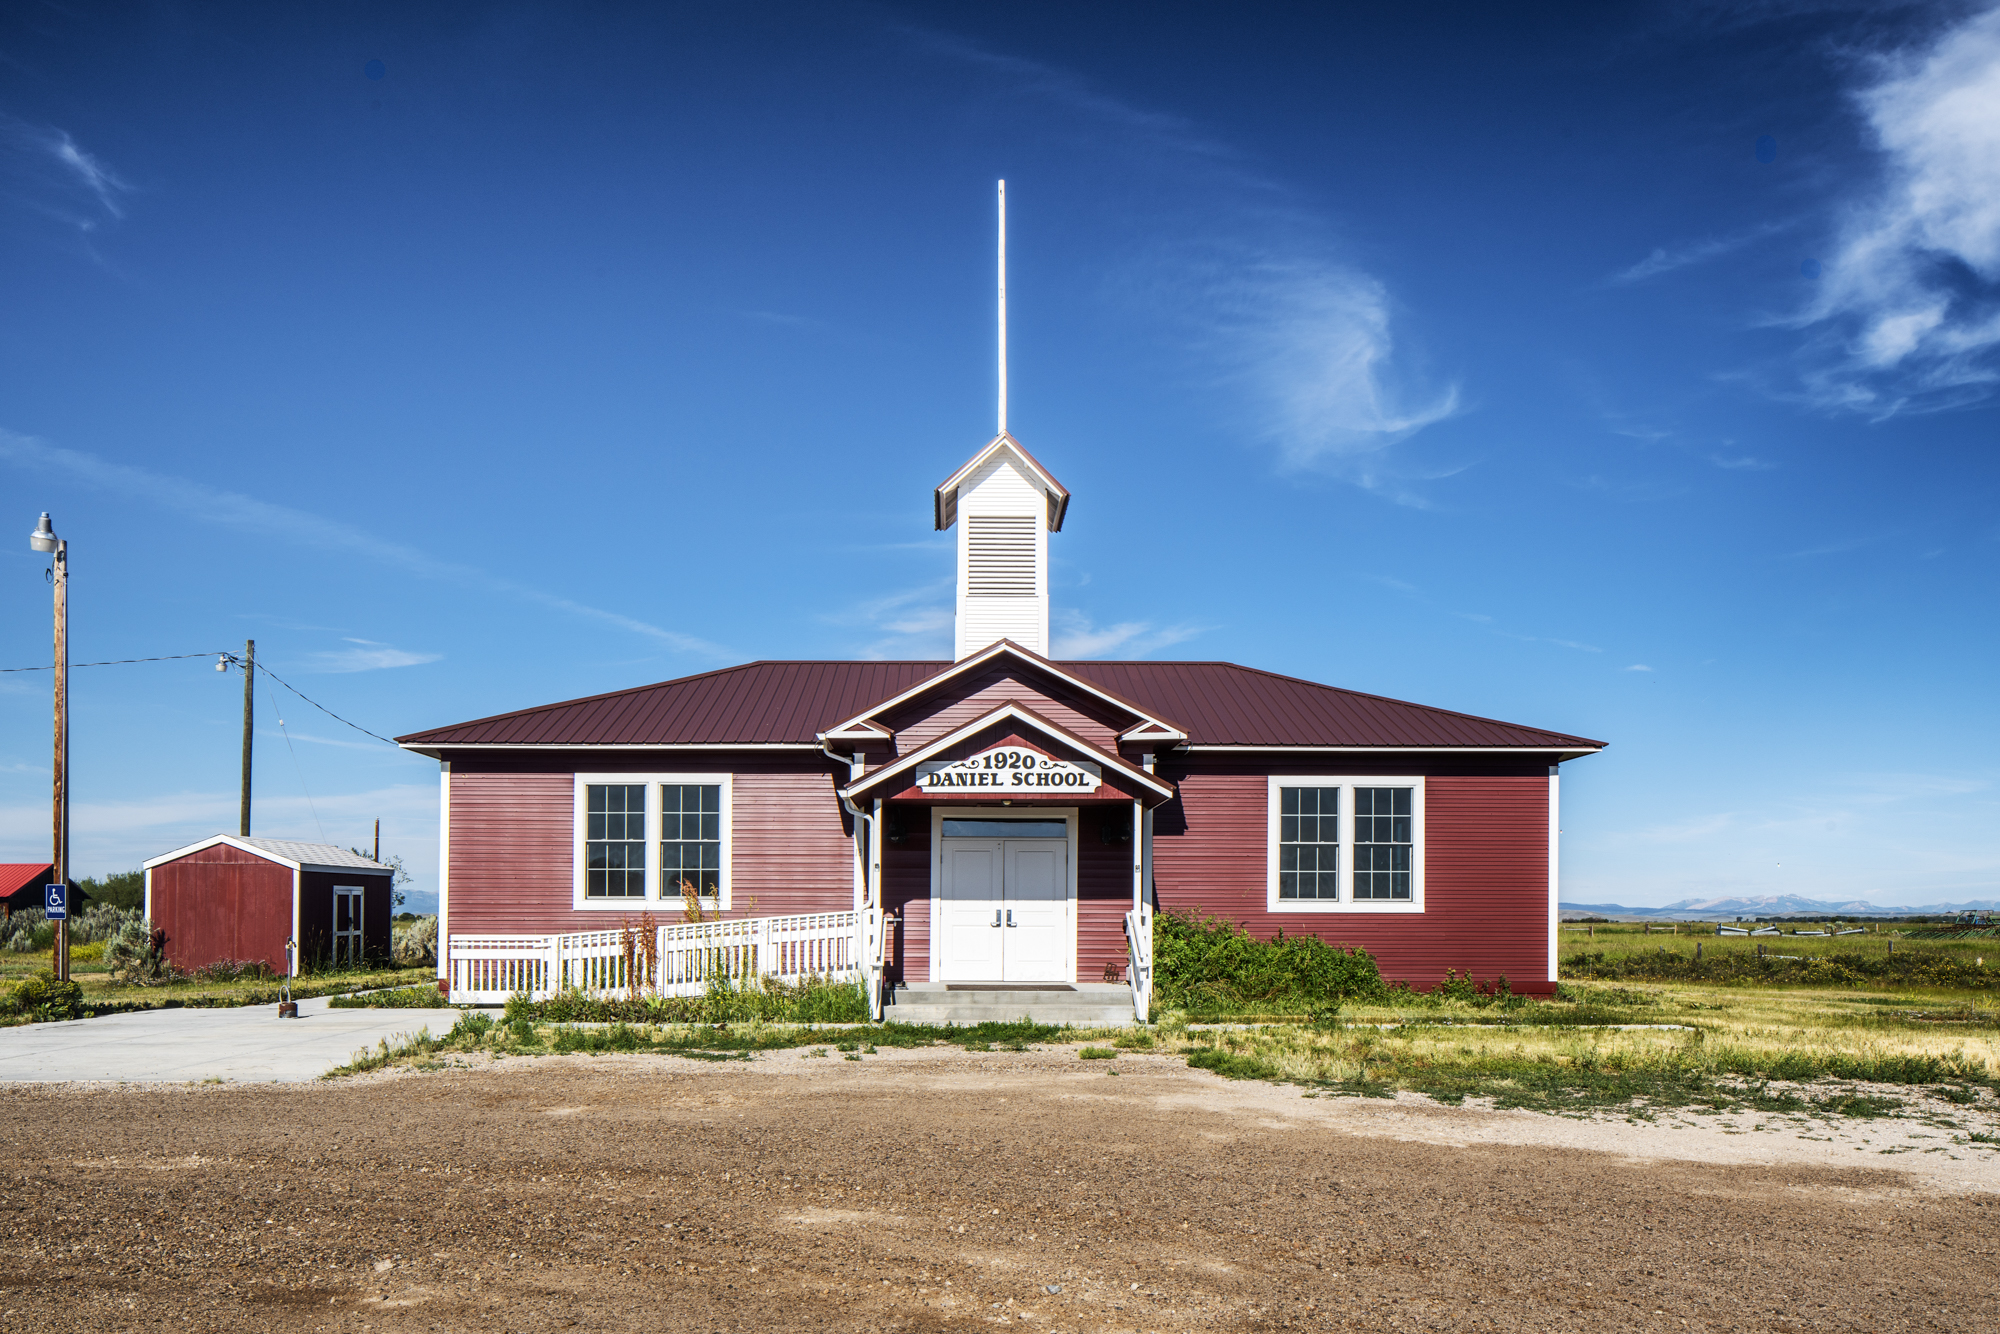 Color, Photograph, West, 1920 Daniel School, Daniel, Wyoming, August 4, 2019